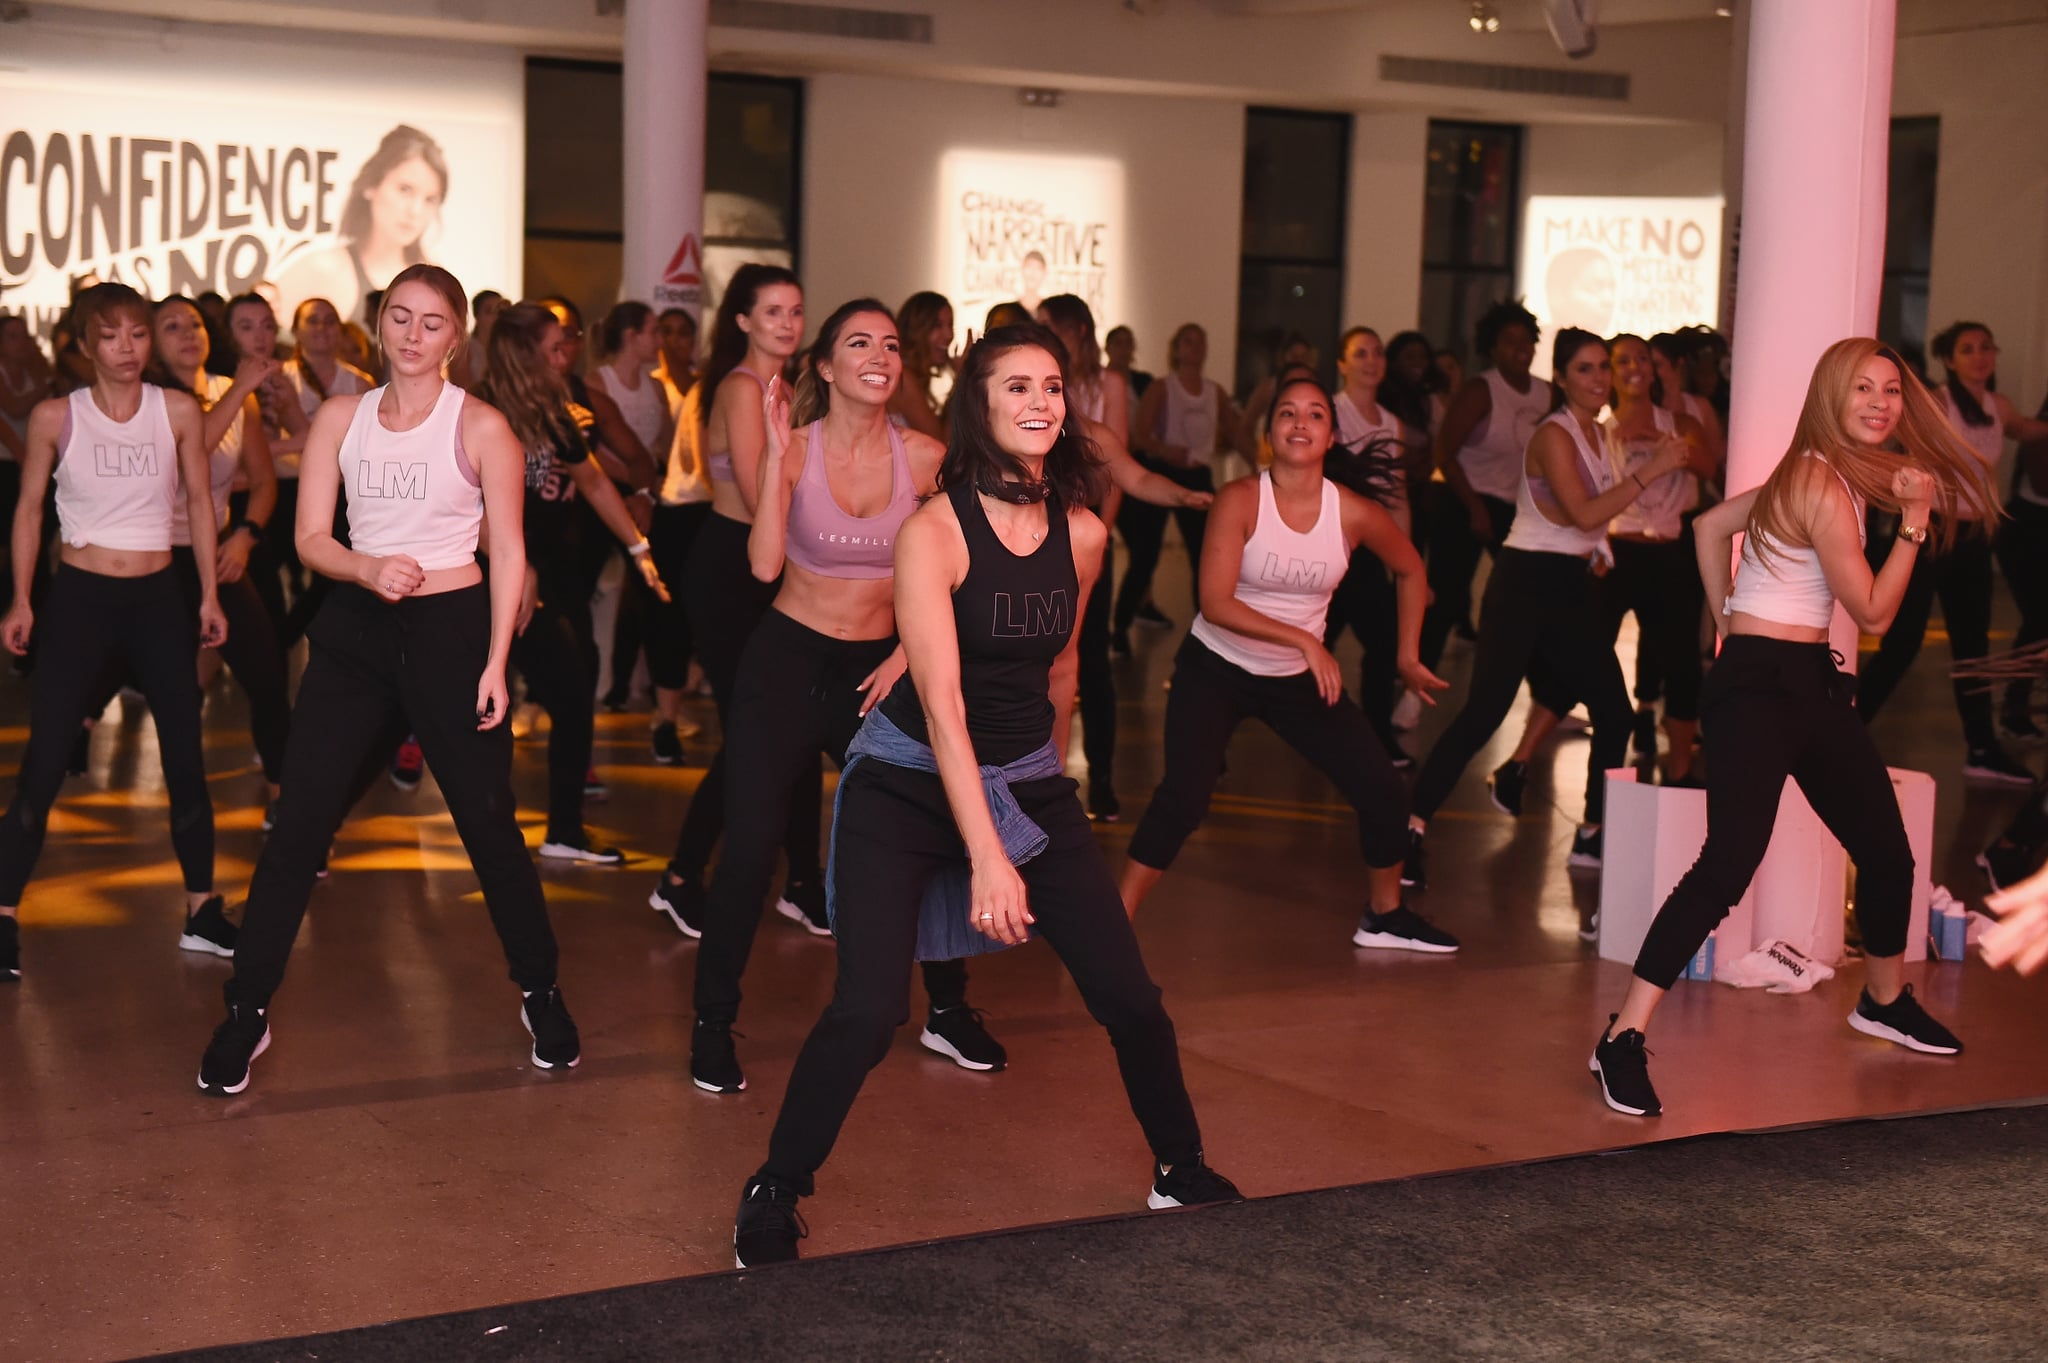 NEW YORK, NY - SEPTEMBER 27:  Actor Nina Dobrev appears as Reebok and Nina Dobrev host the Donate in Sweat NYC event, bringing together media and influencers to celebrate their shared commitment to female empowerment and showcase the newest Les Mills BODYJAM workout, at Hudson Mercantile on September 27, 2018 in New York City.  (Photo by Ilya S. Savenok/Getty Images for Reebok) *** Local Caption *** Nina Dobrev